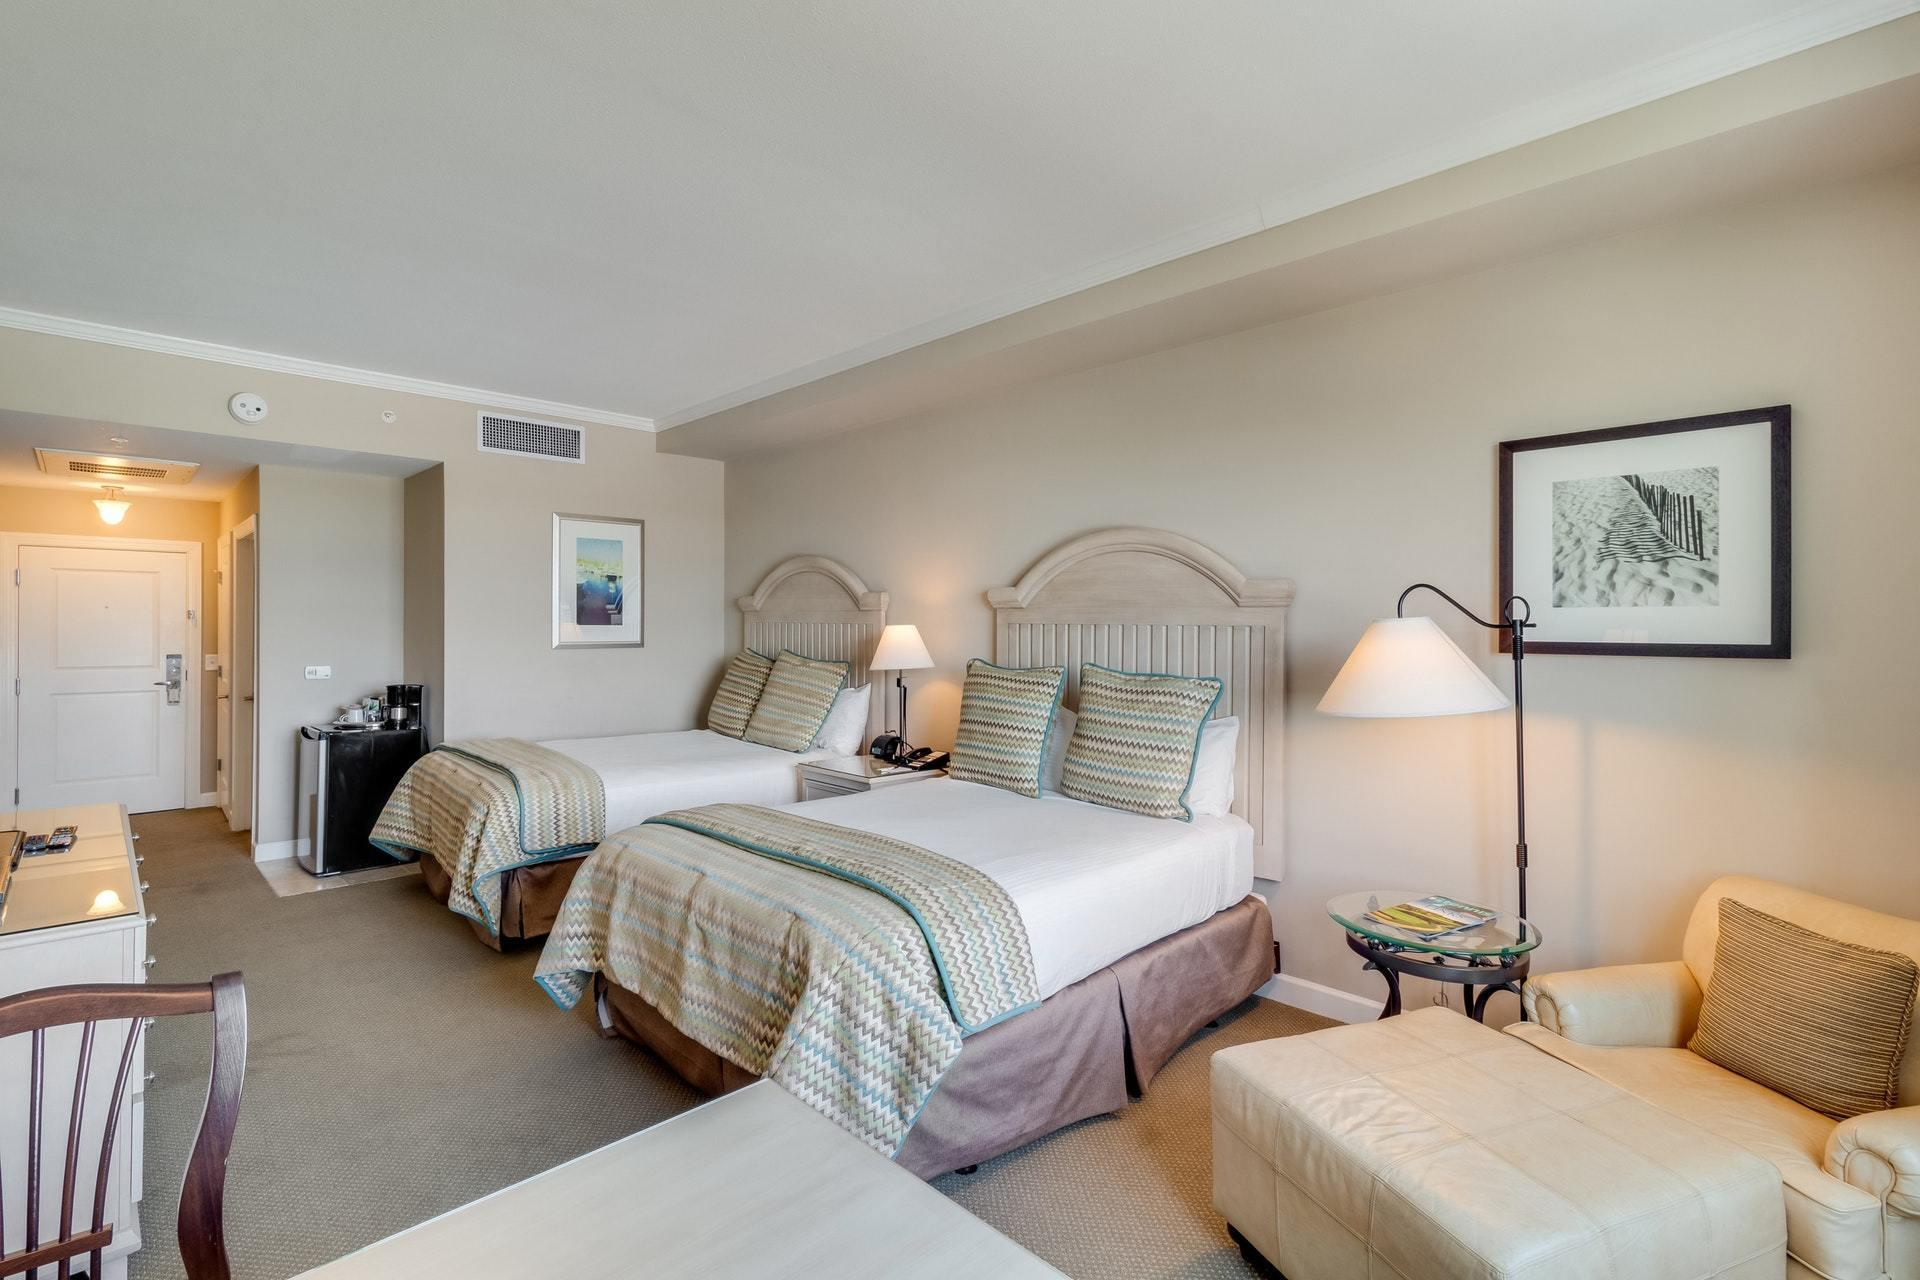 Wild Dunes Homes For Sale - 505/507 Village At Wild Dunes, Isle of Palms, SC - 0